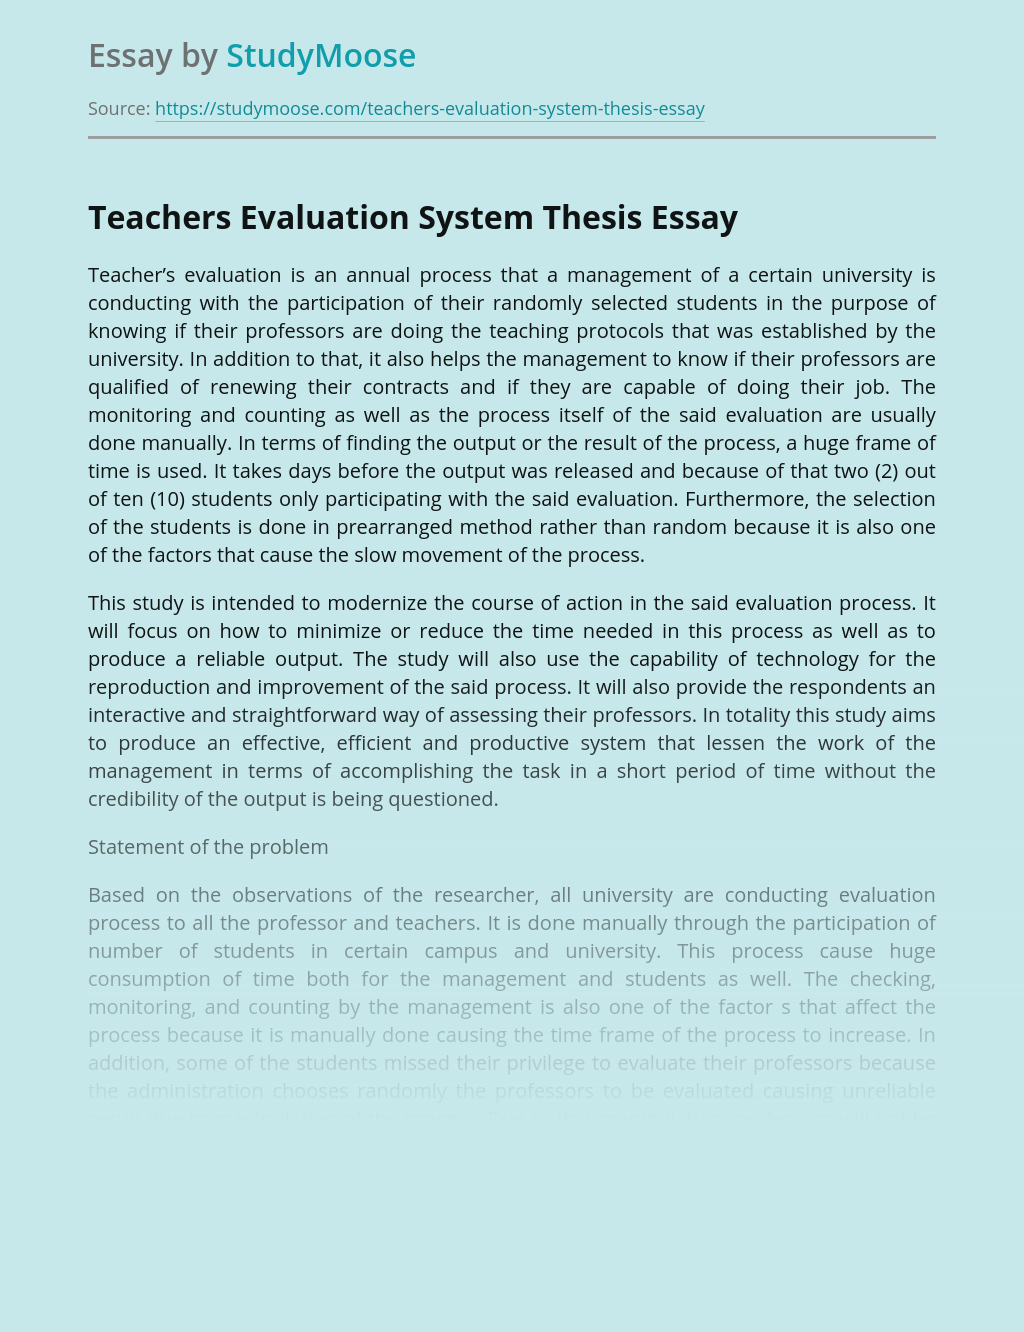 Teachers Evaluation System Thesis